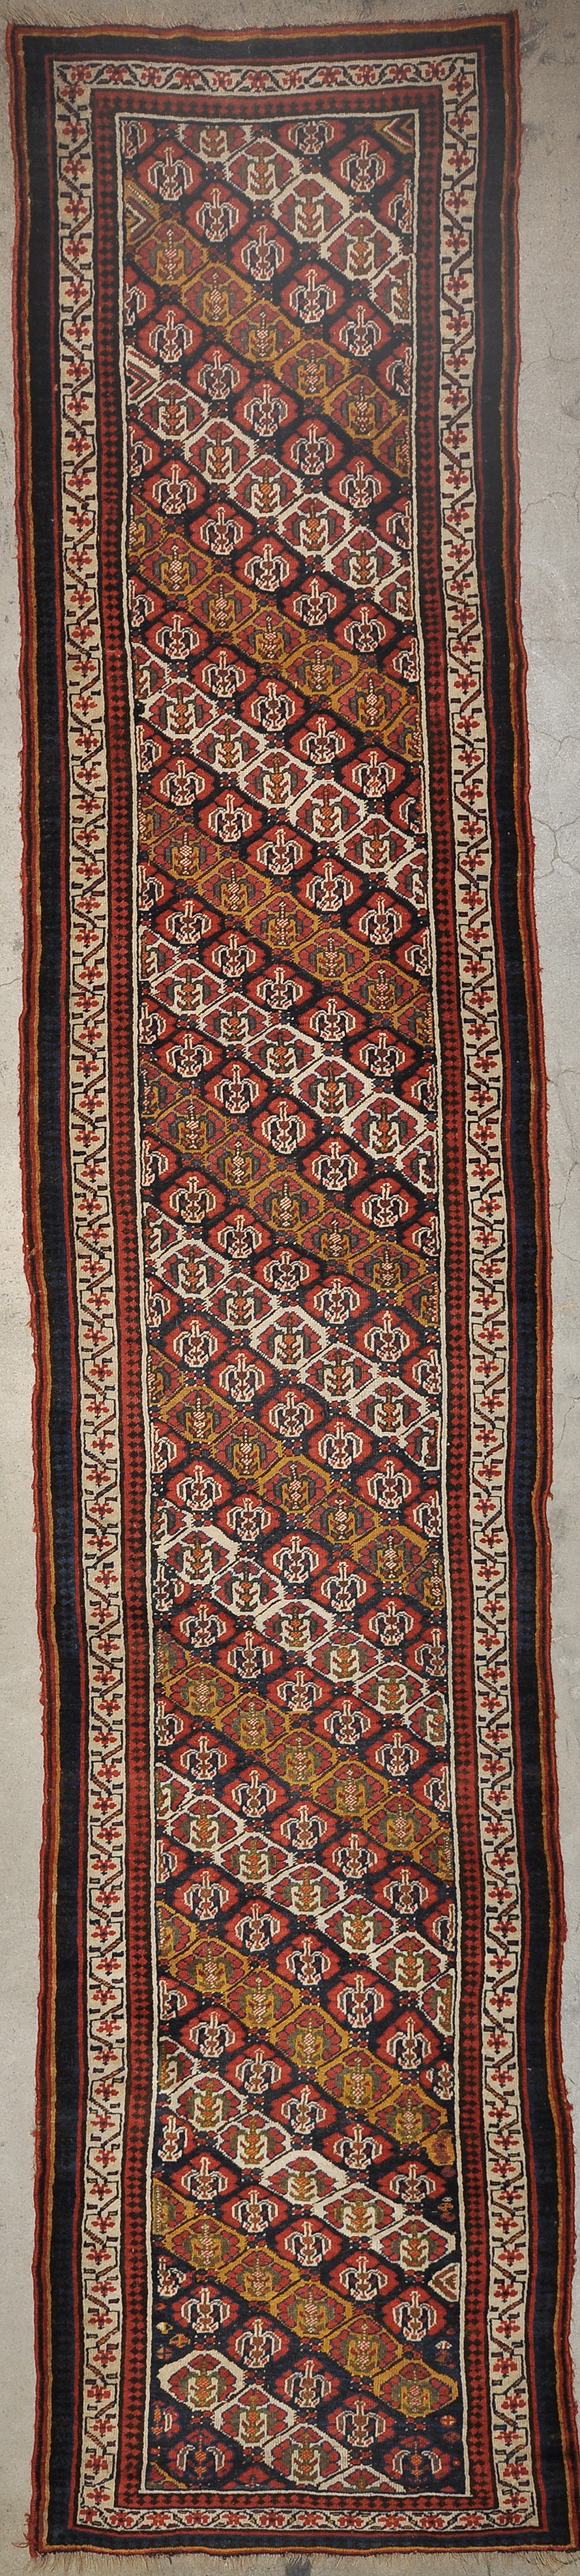 North West Persian Kurd rugs and more oriental carpet 34112-